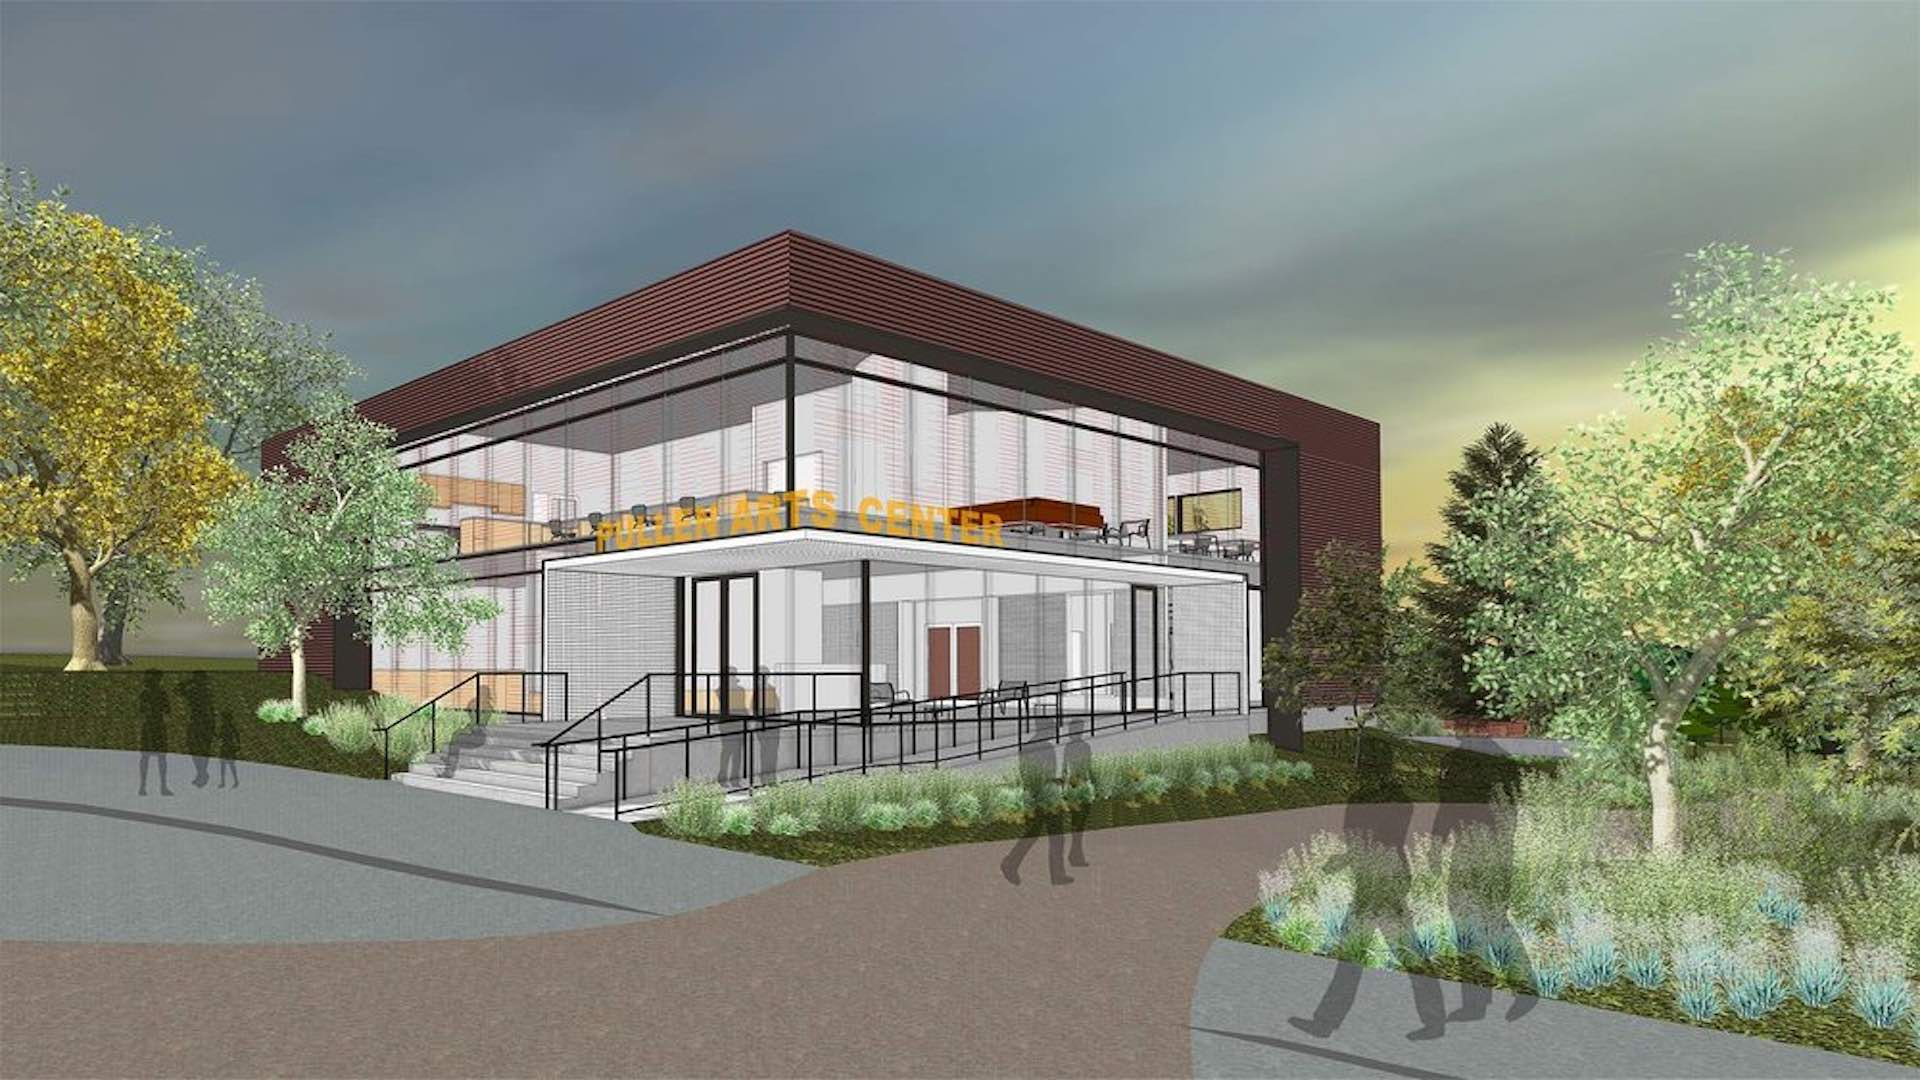 Architect's rendering of the new front entry planned as part of the expansion and renovation of the Pullen Art Center